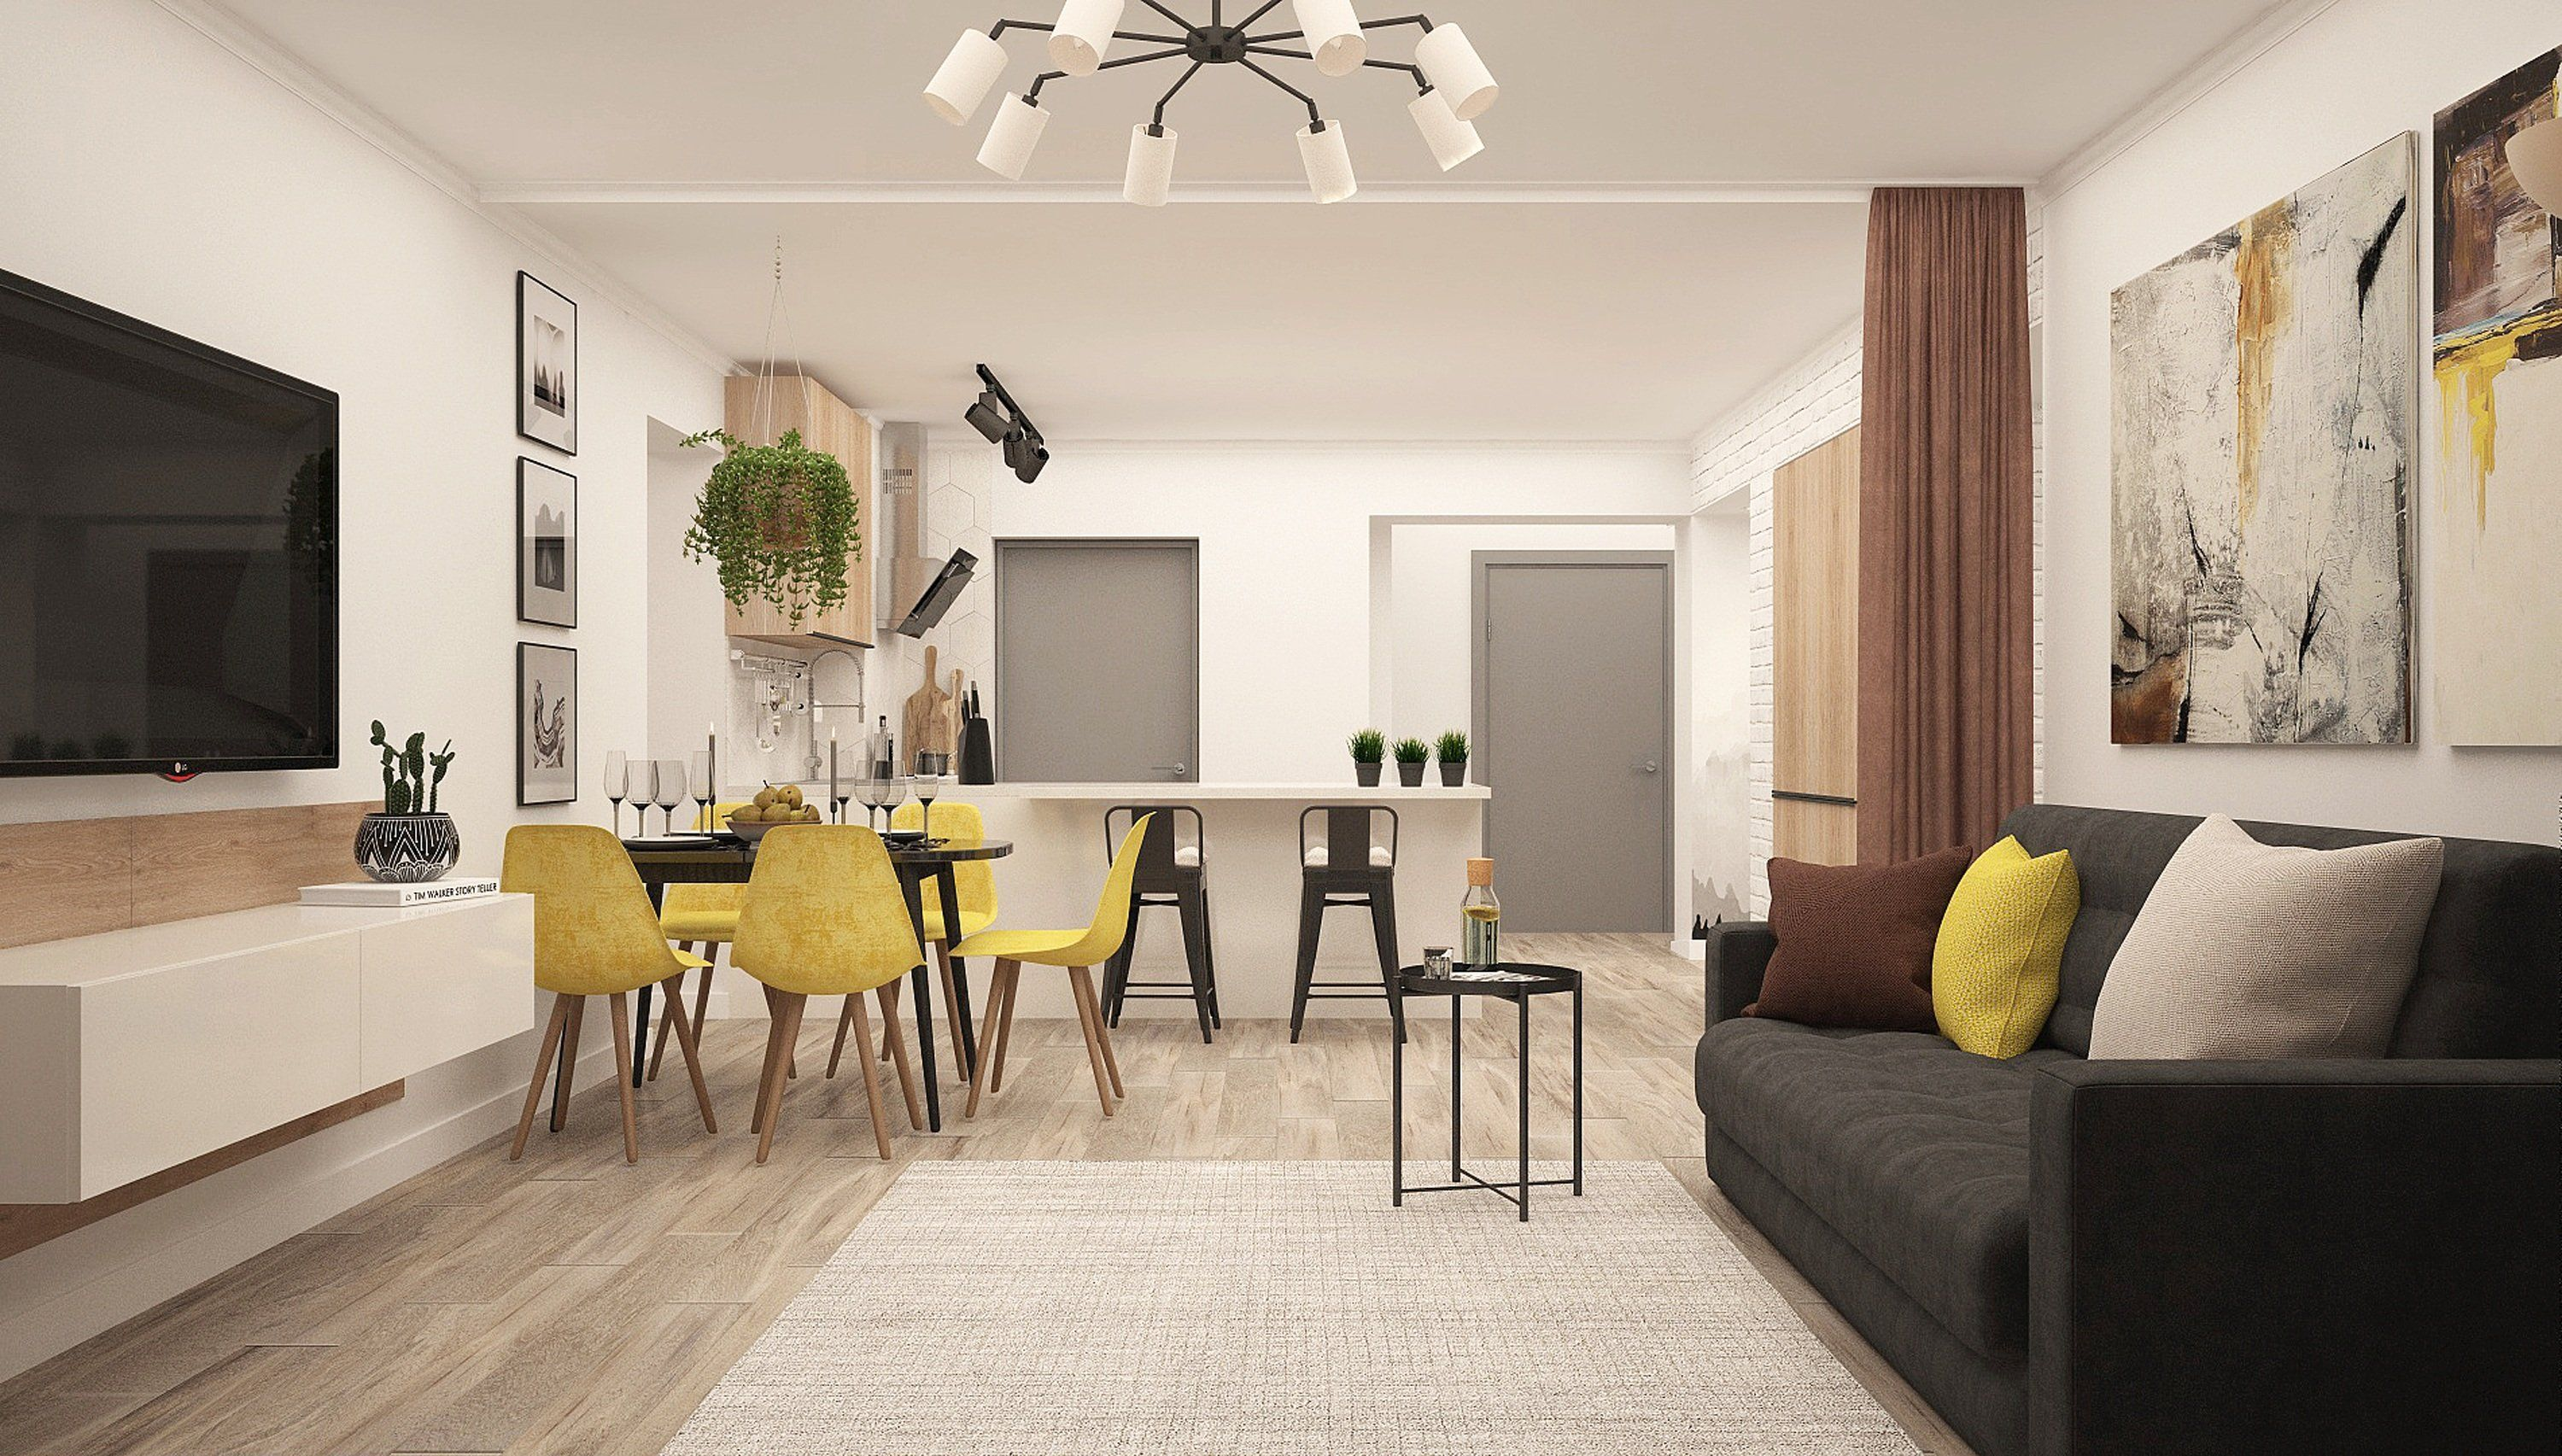 The common area at OKR, a Build To Rent development in South East London.